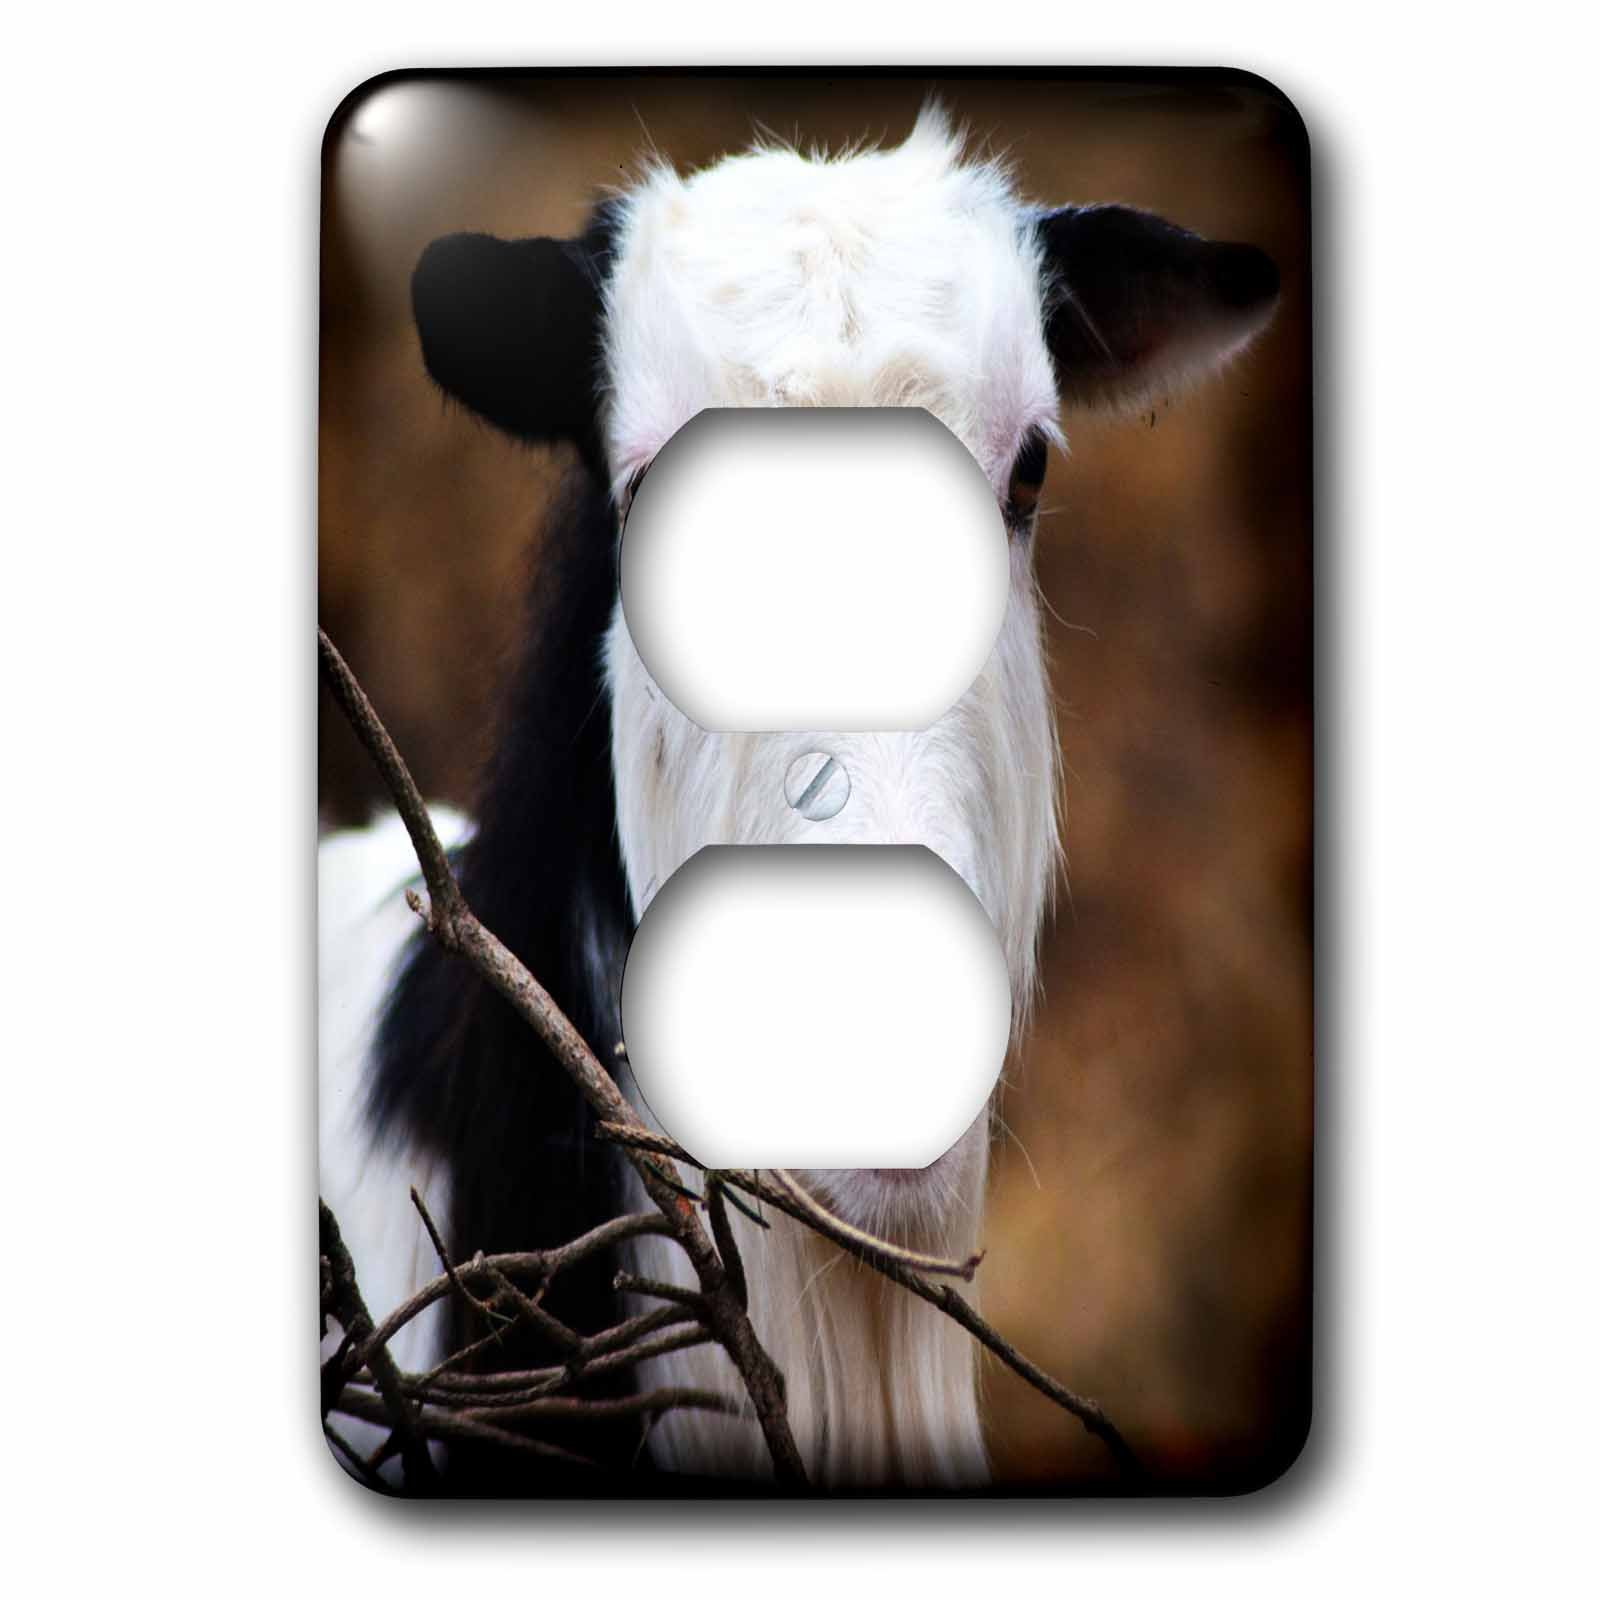 3dRose WhiteOaks Photography and Artwork - Goats - Heres Looking at you Kid is a photo of a goat looking very serious - Light Switch Covers - 2 plug outlet cover (lsp_265344_6)